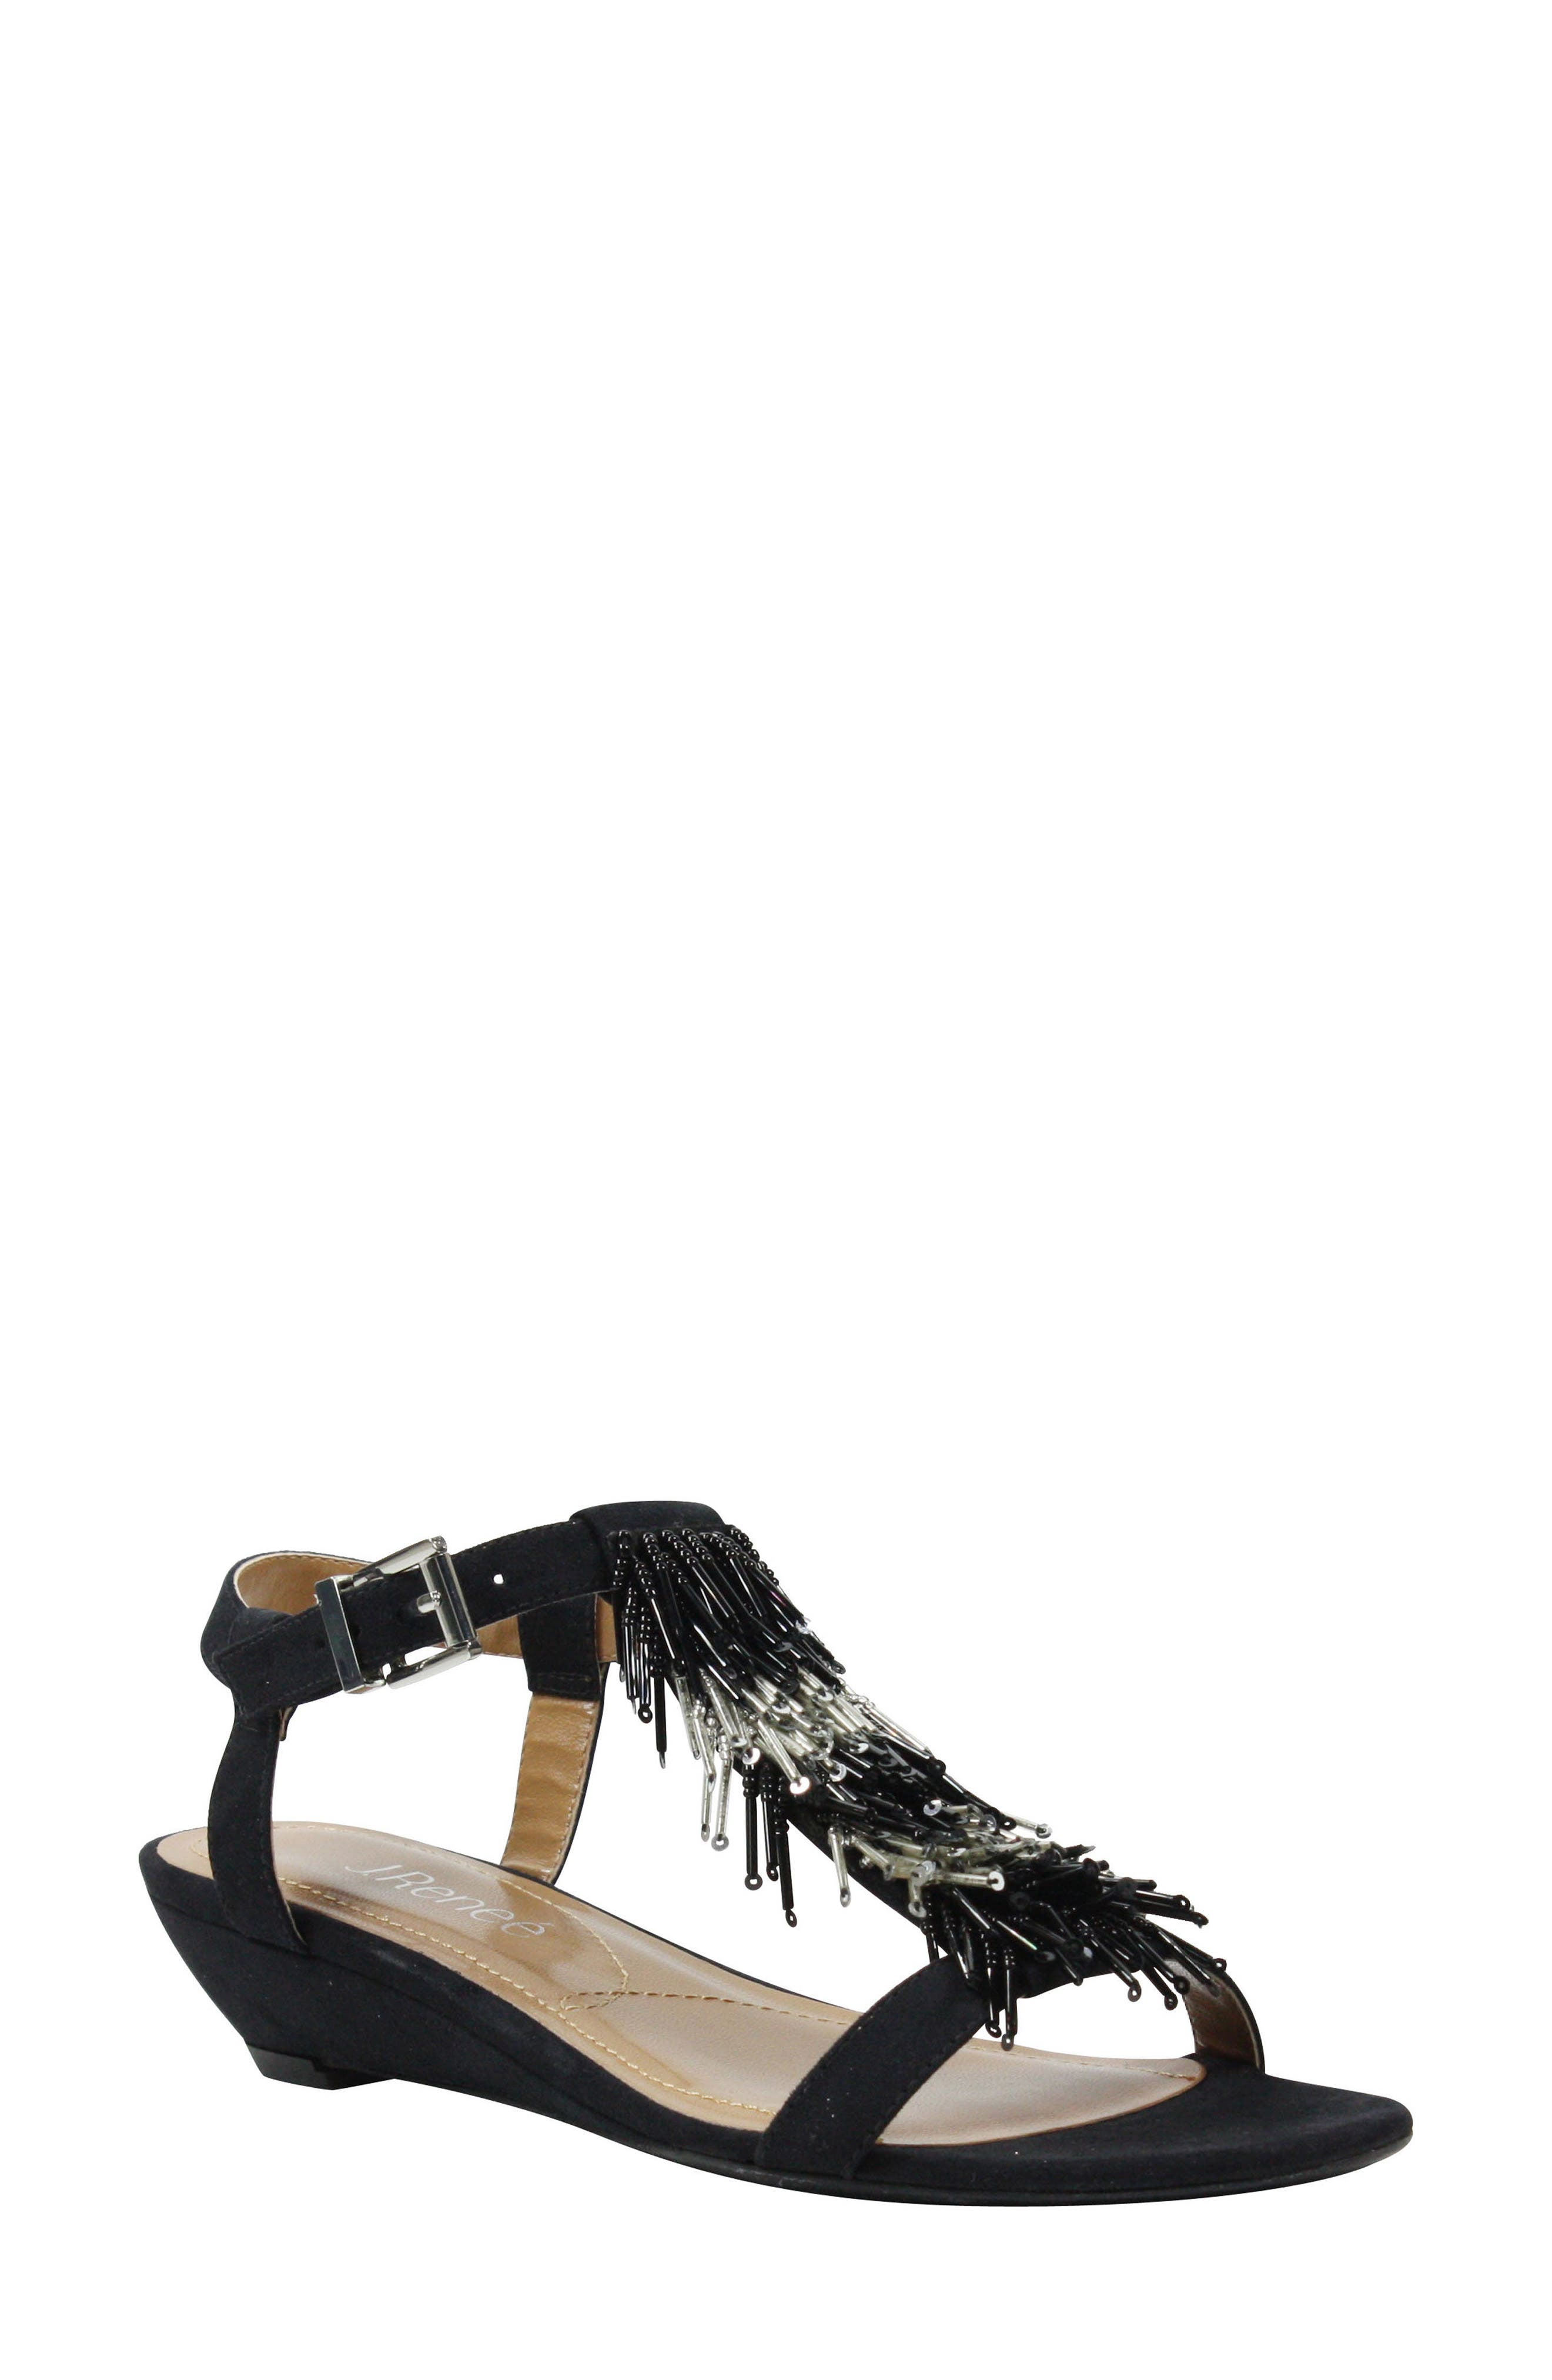 Alessa Sandal,                             Main thumbnail 1, color,                             BLACK/ SILVER FABRIC